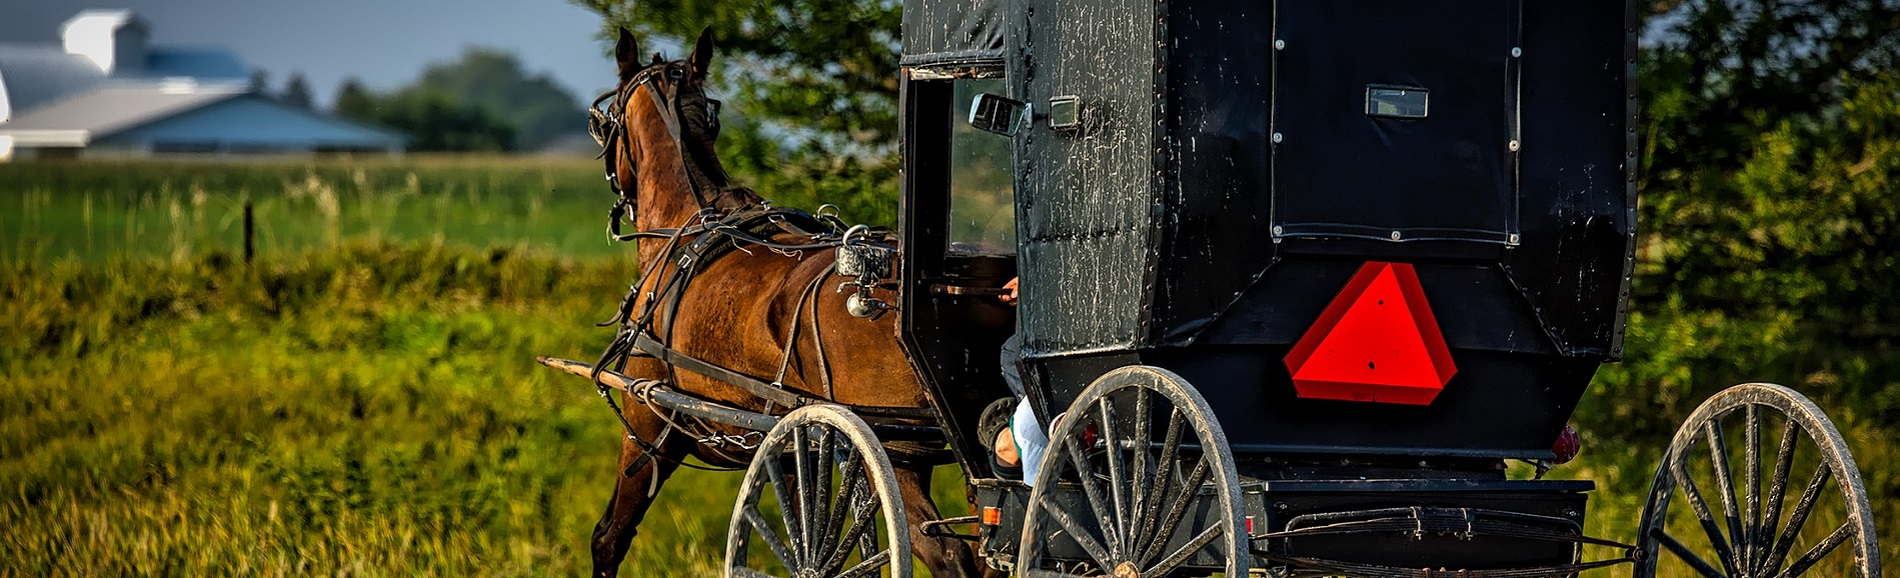 Horse and buggy on a country road